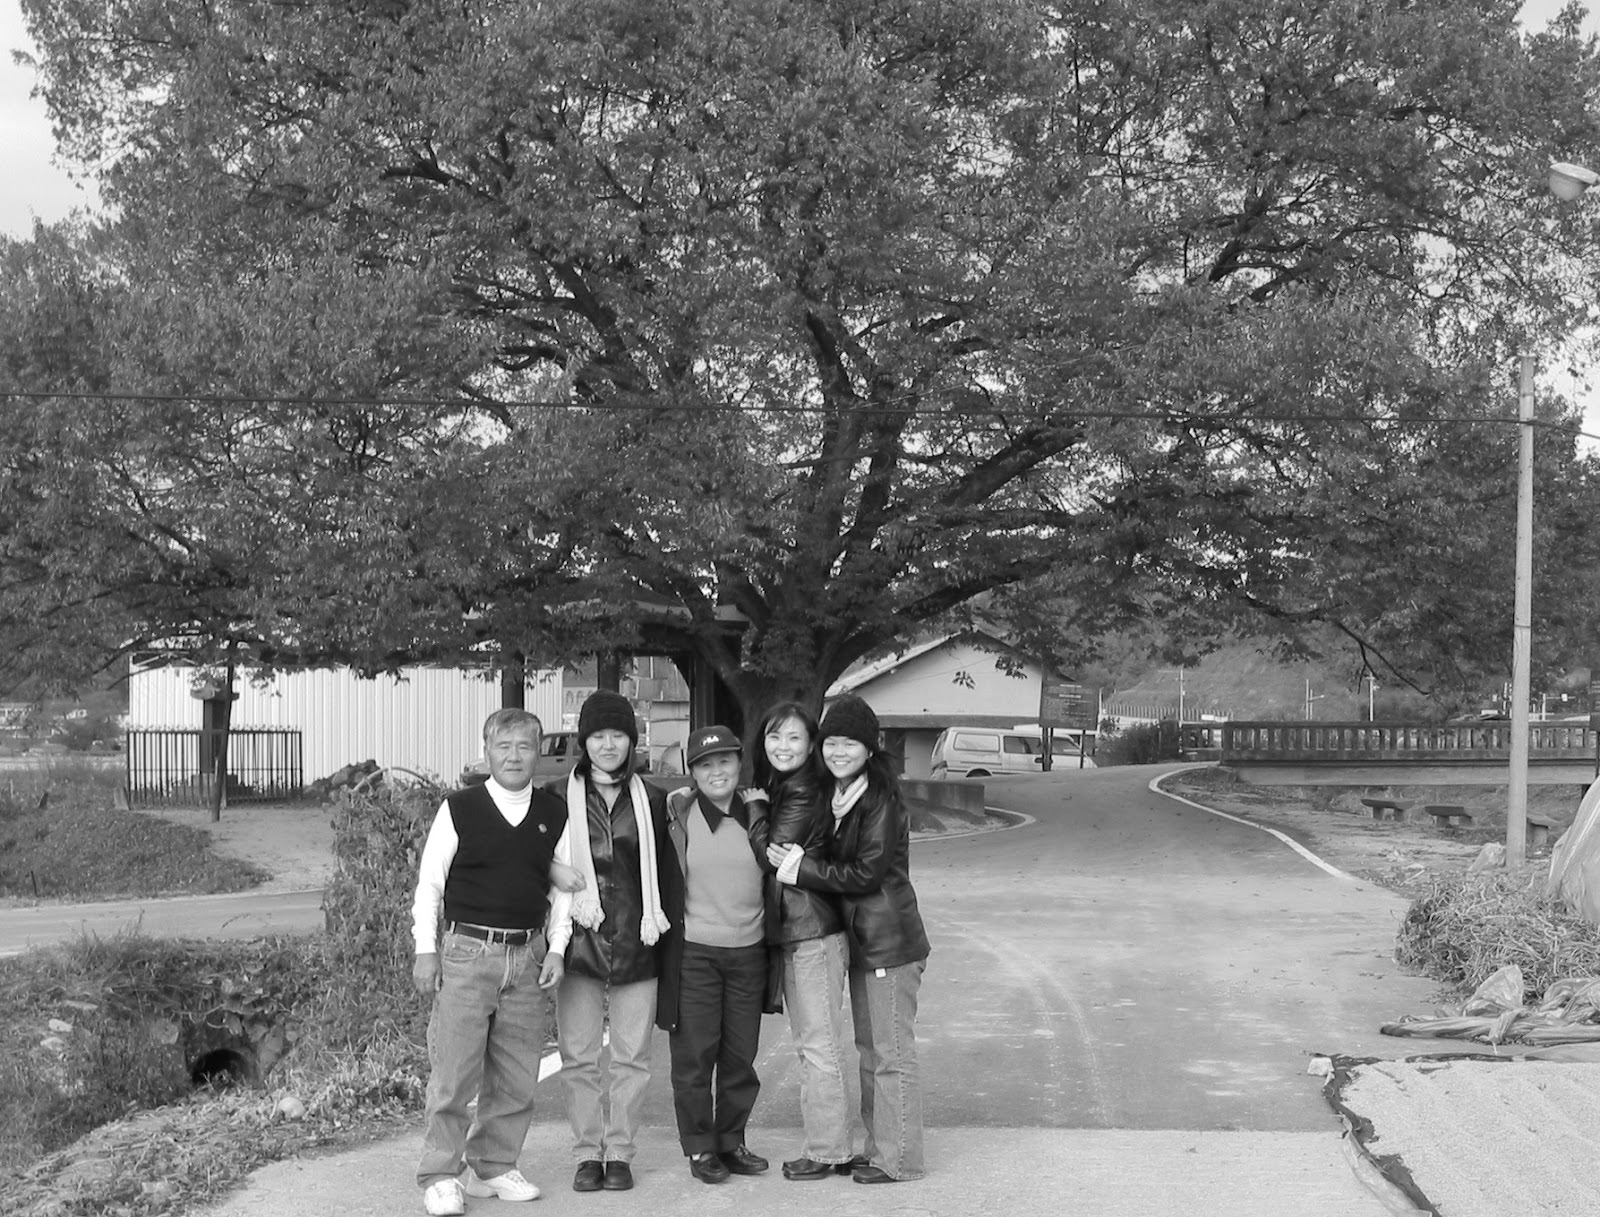 Left to Right: dad, sis, mom, me and sis The tree behind us was planted by my grandfather. After he died, my mother and her baby sister were sent off to live with their uncle's family. The creek on the left was where my mother hid, waiting for the hay truck to make her getaway to #Seoul in search for her mother.